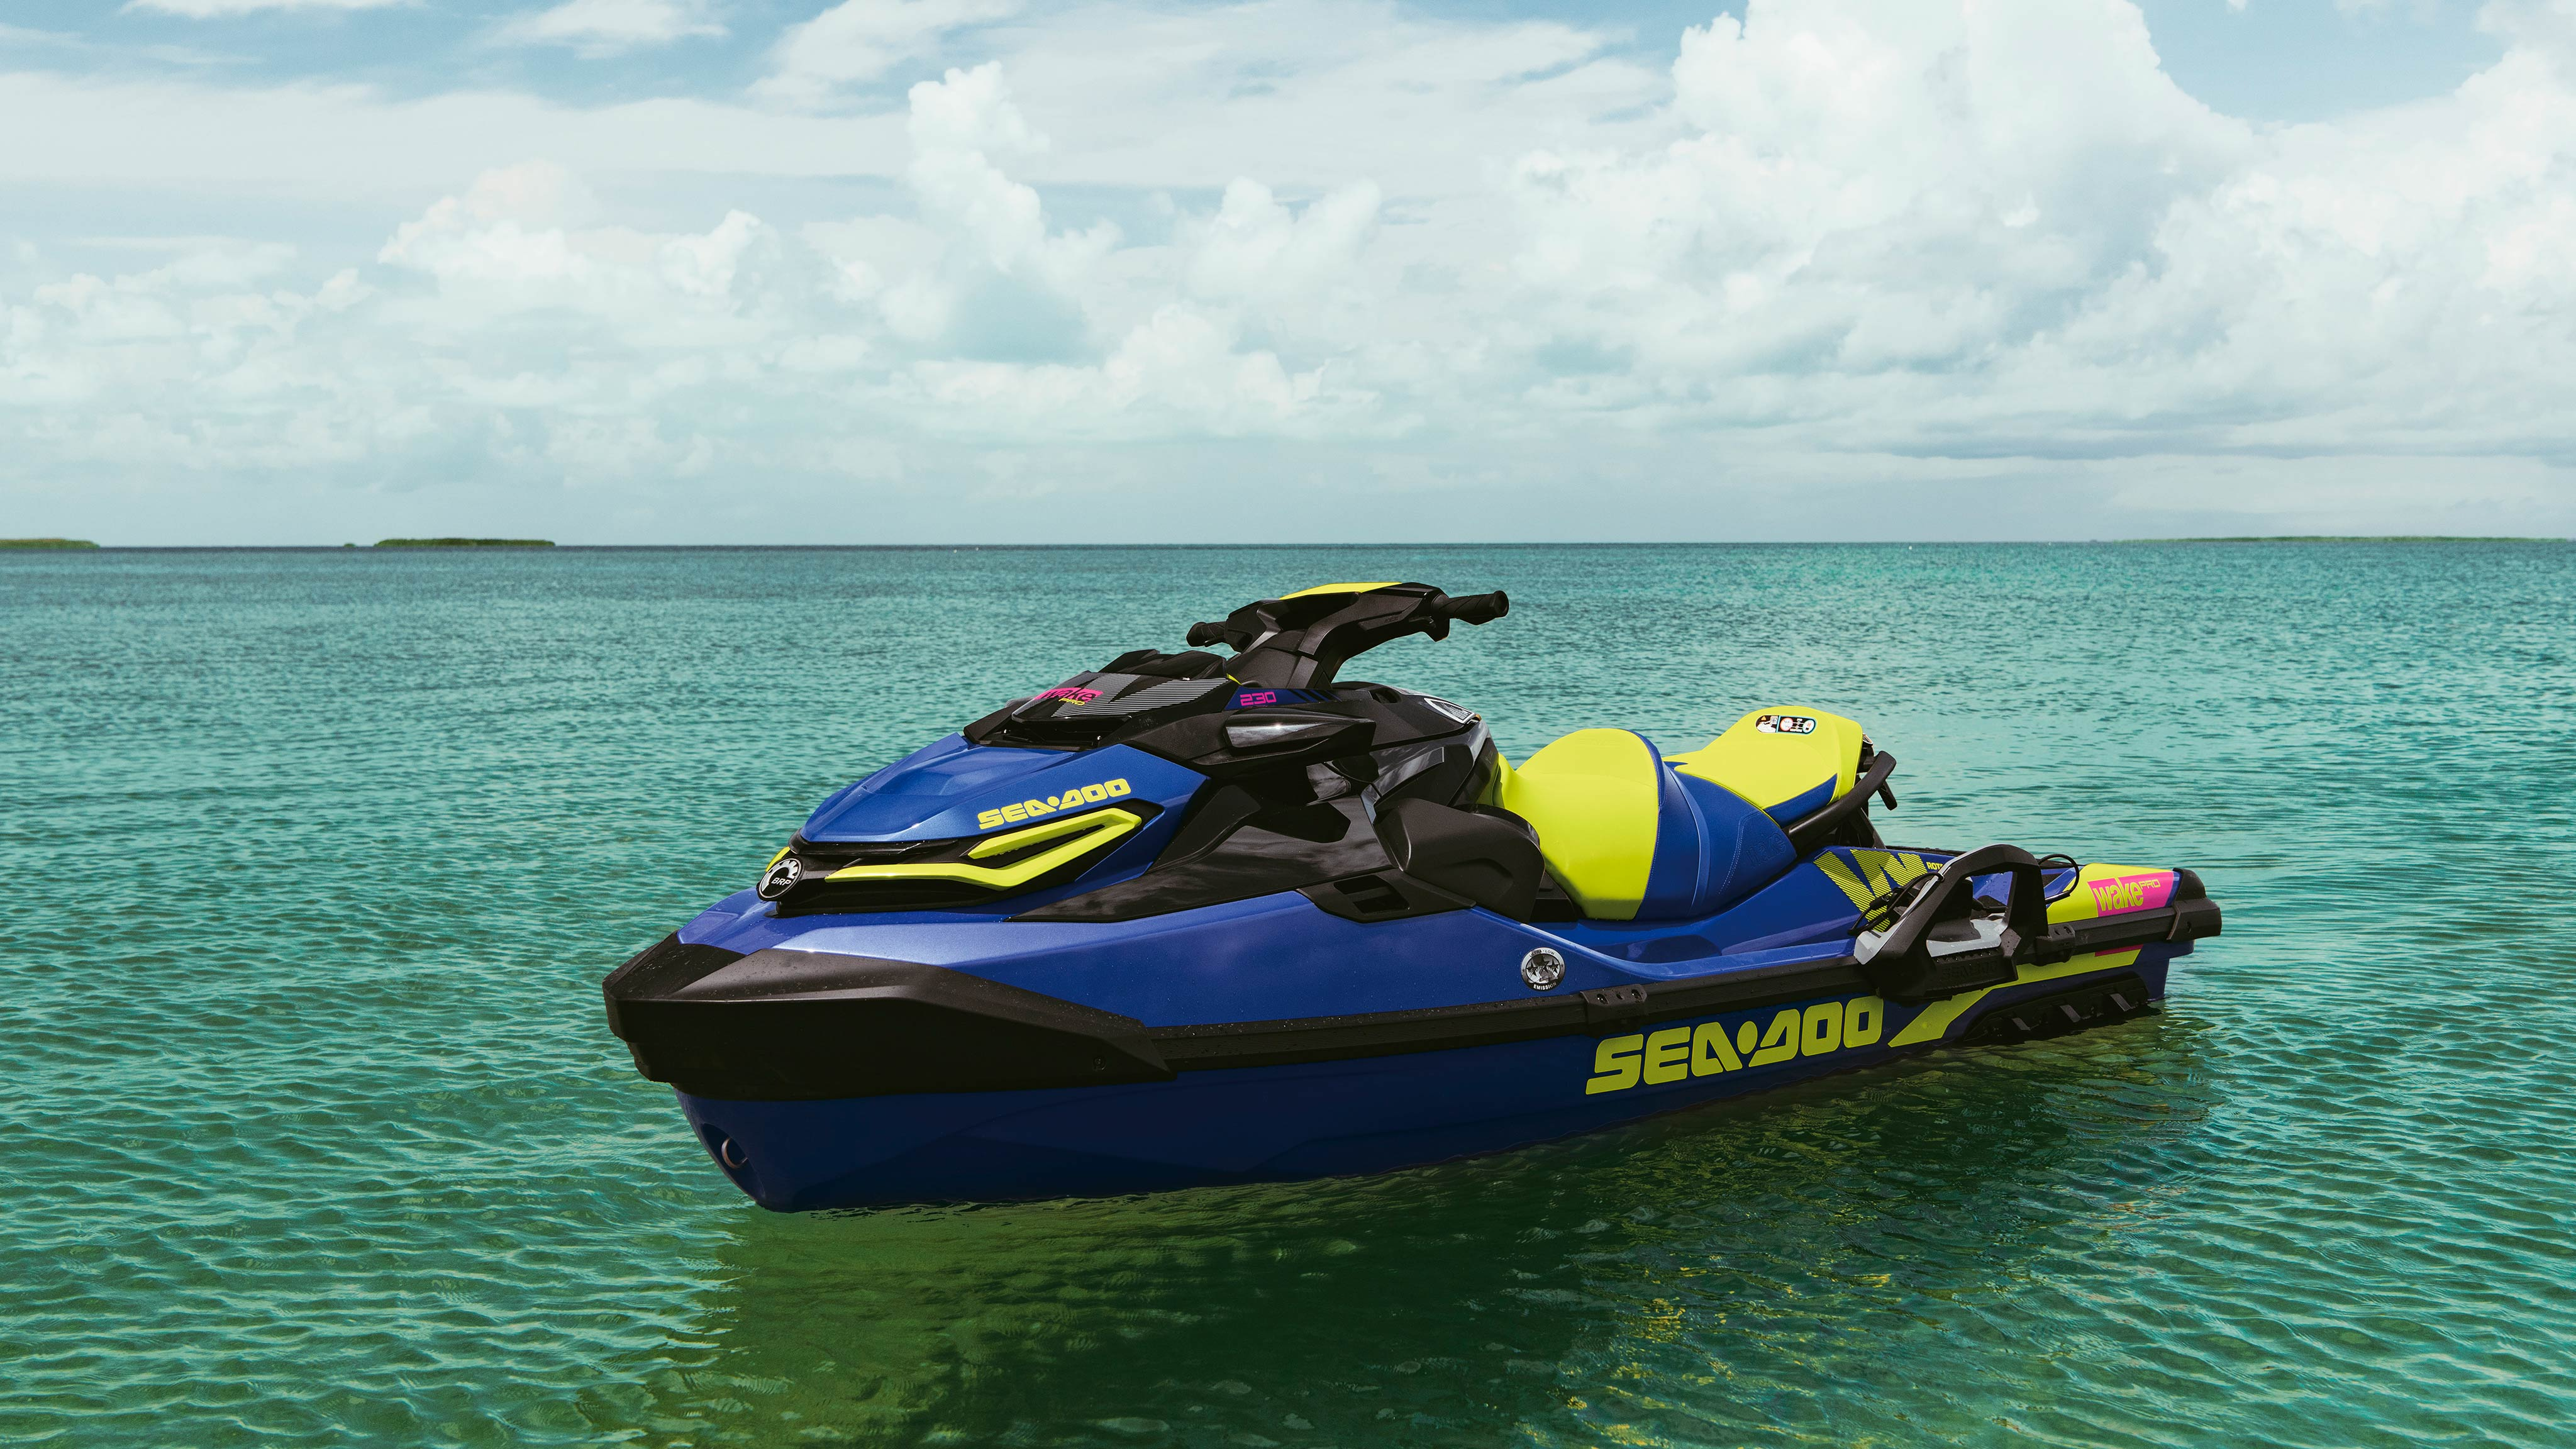 Beauty shot of a Sea-Doo Wake Pro parked in the water